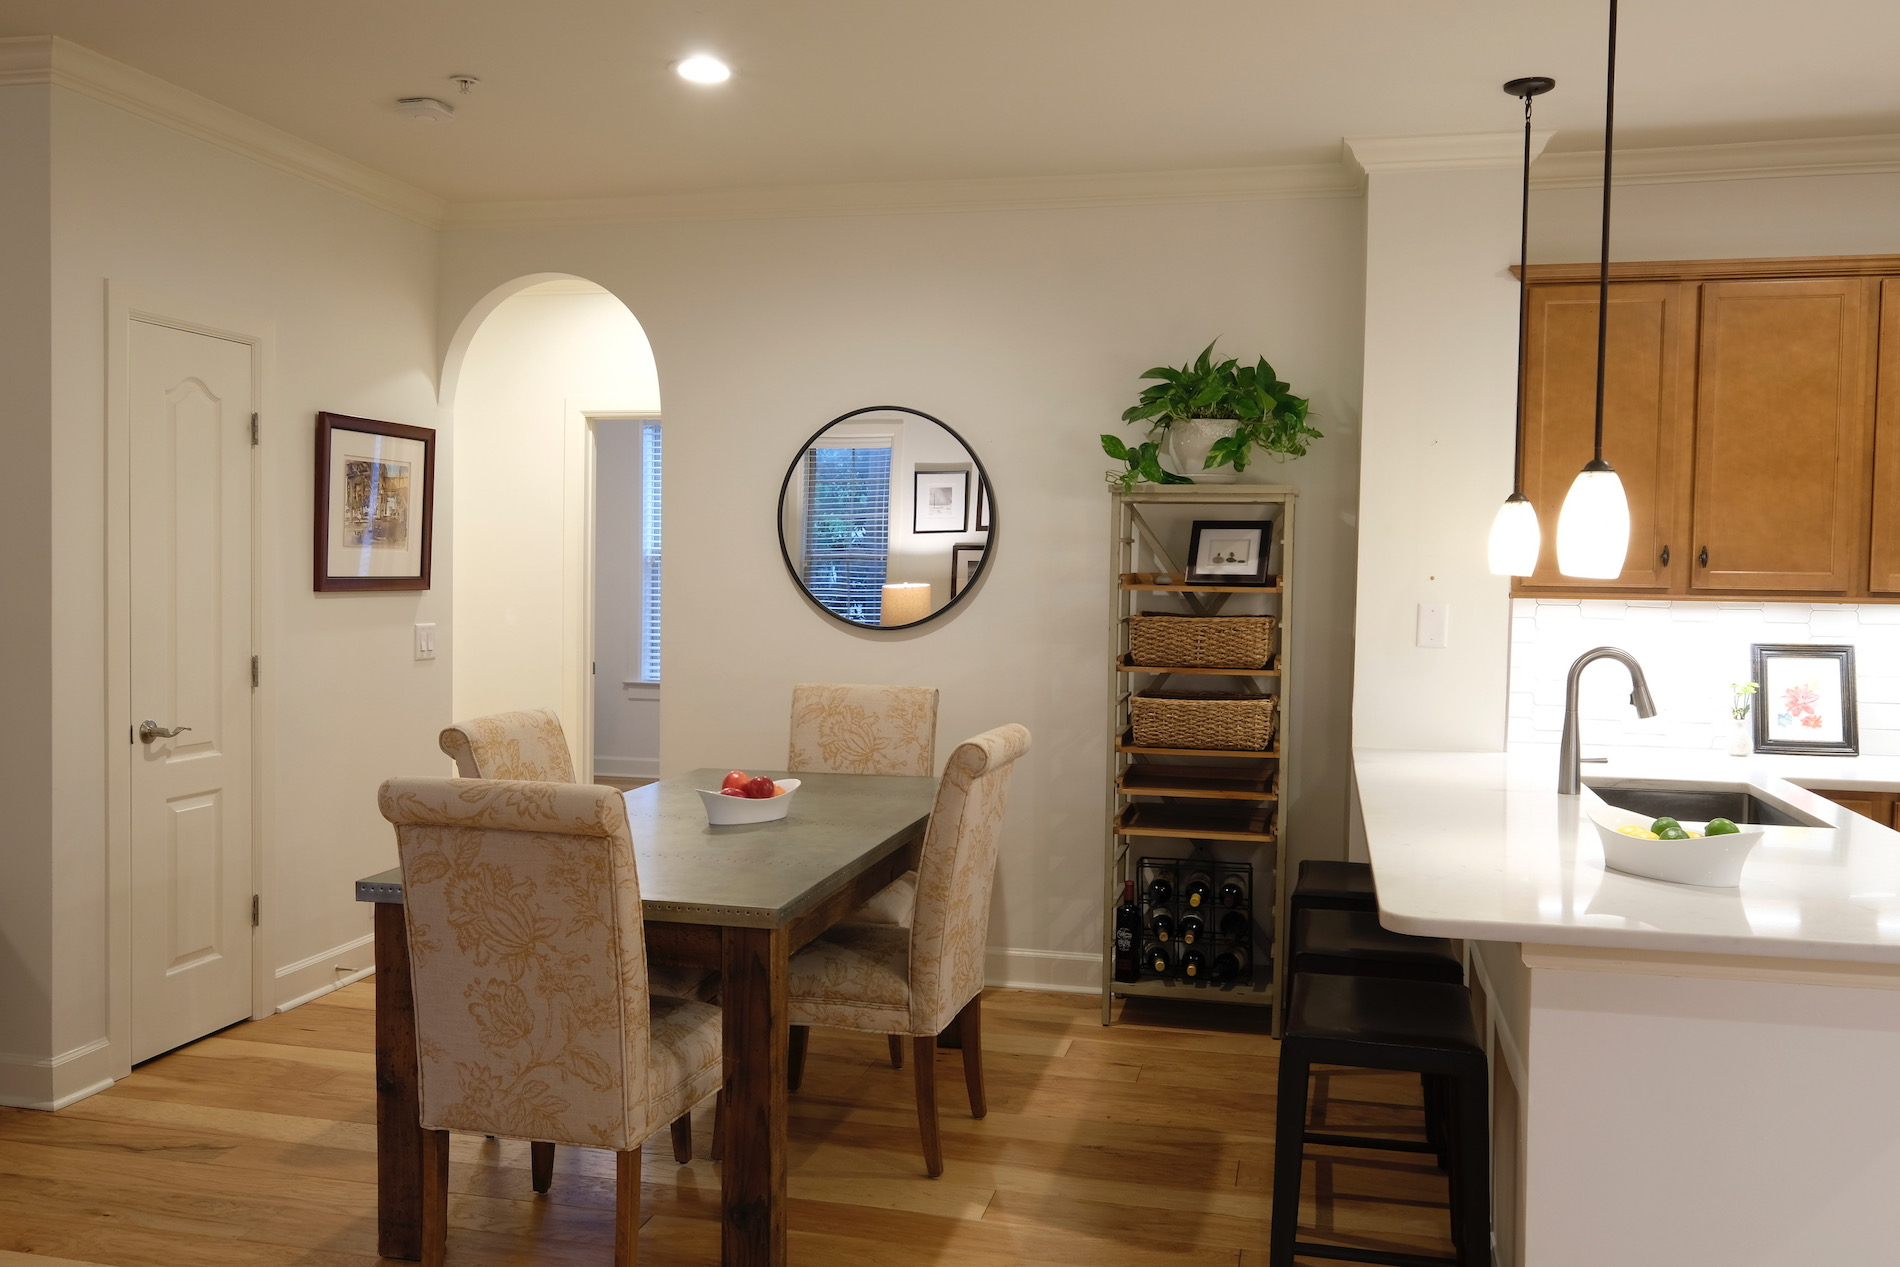 Sherwin Williams white paint, industrial dining table, house plant, white quartz counters